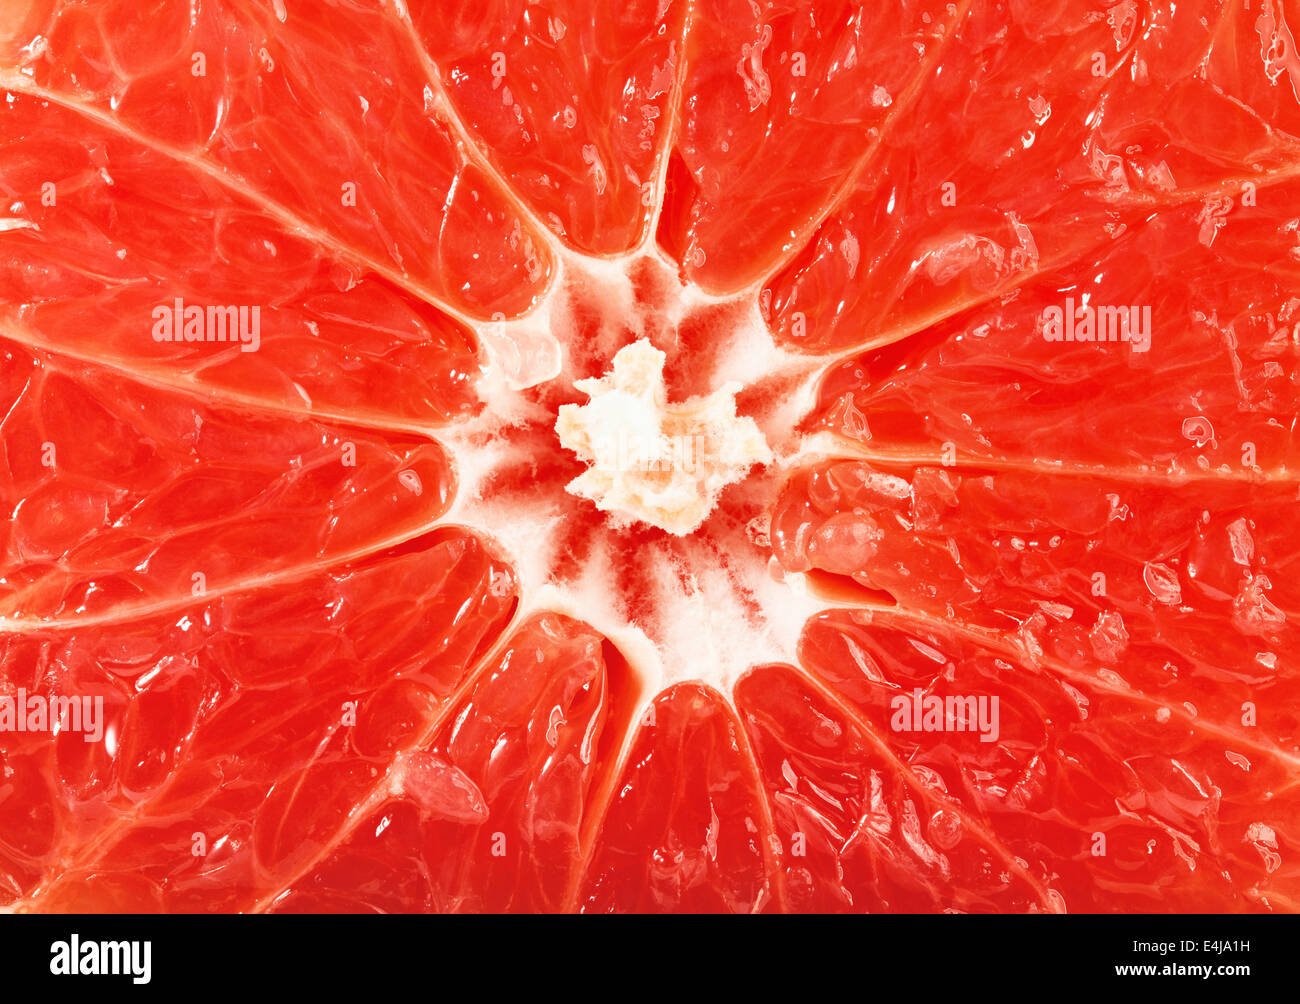 Grapefruit slices background for you design - Stock Image